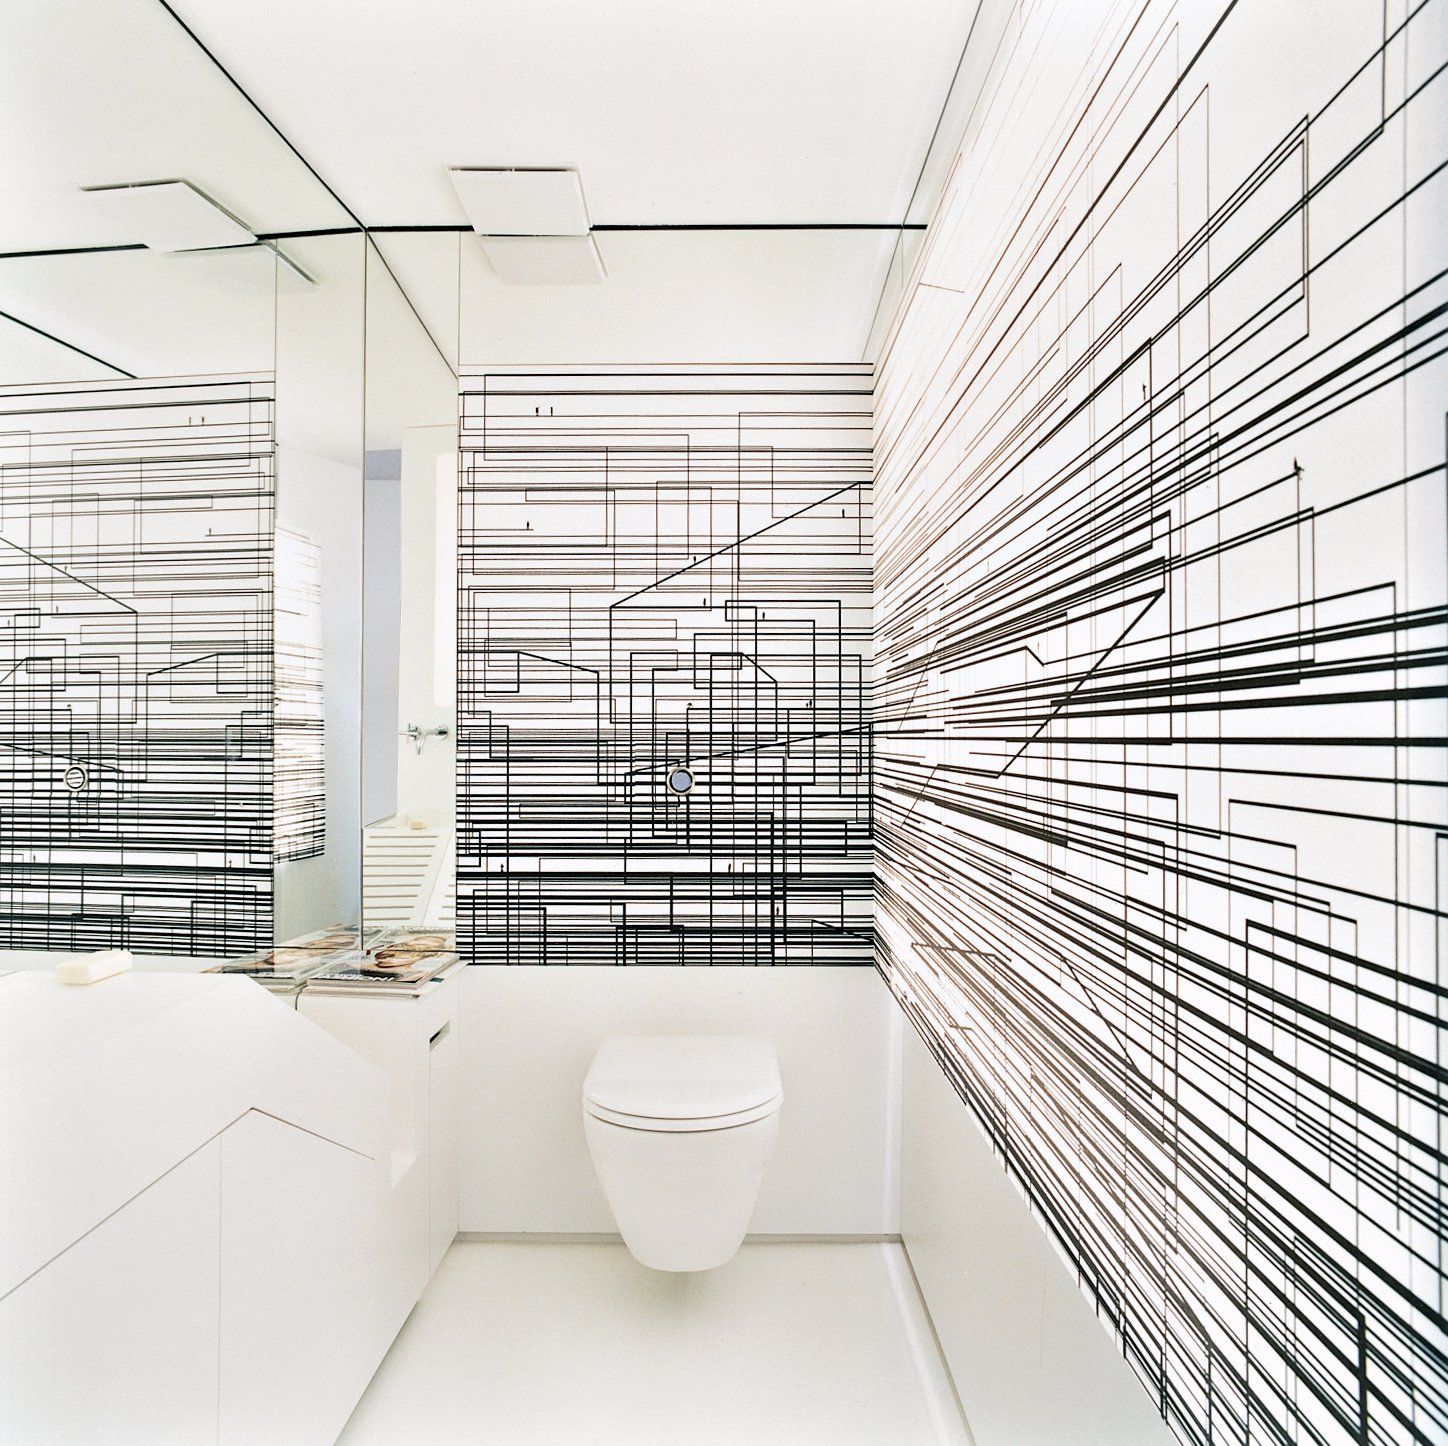 The walls of the toilet room are decorated with an abstract composition of overlapping black lines printed on a screen that is lit from behind.  Photo 12 of 16 in The Penthouse Has Landed